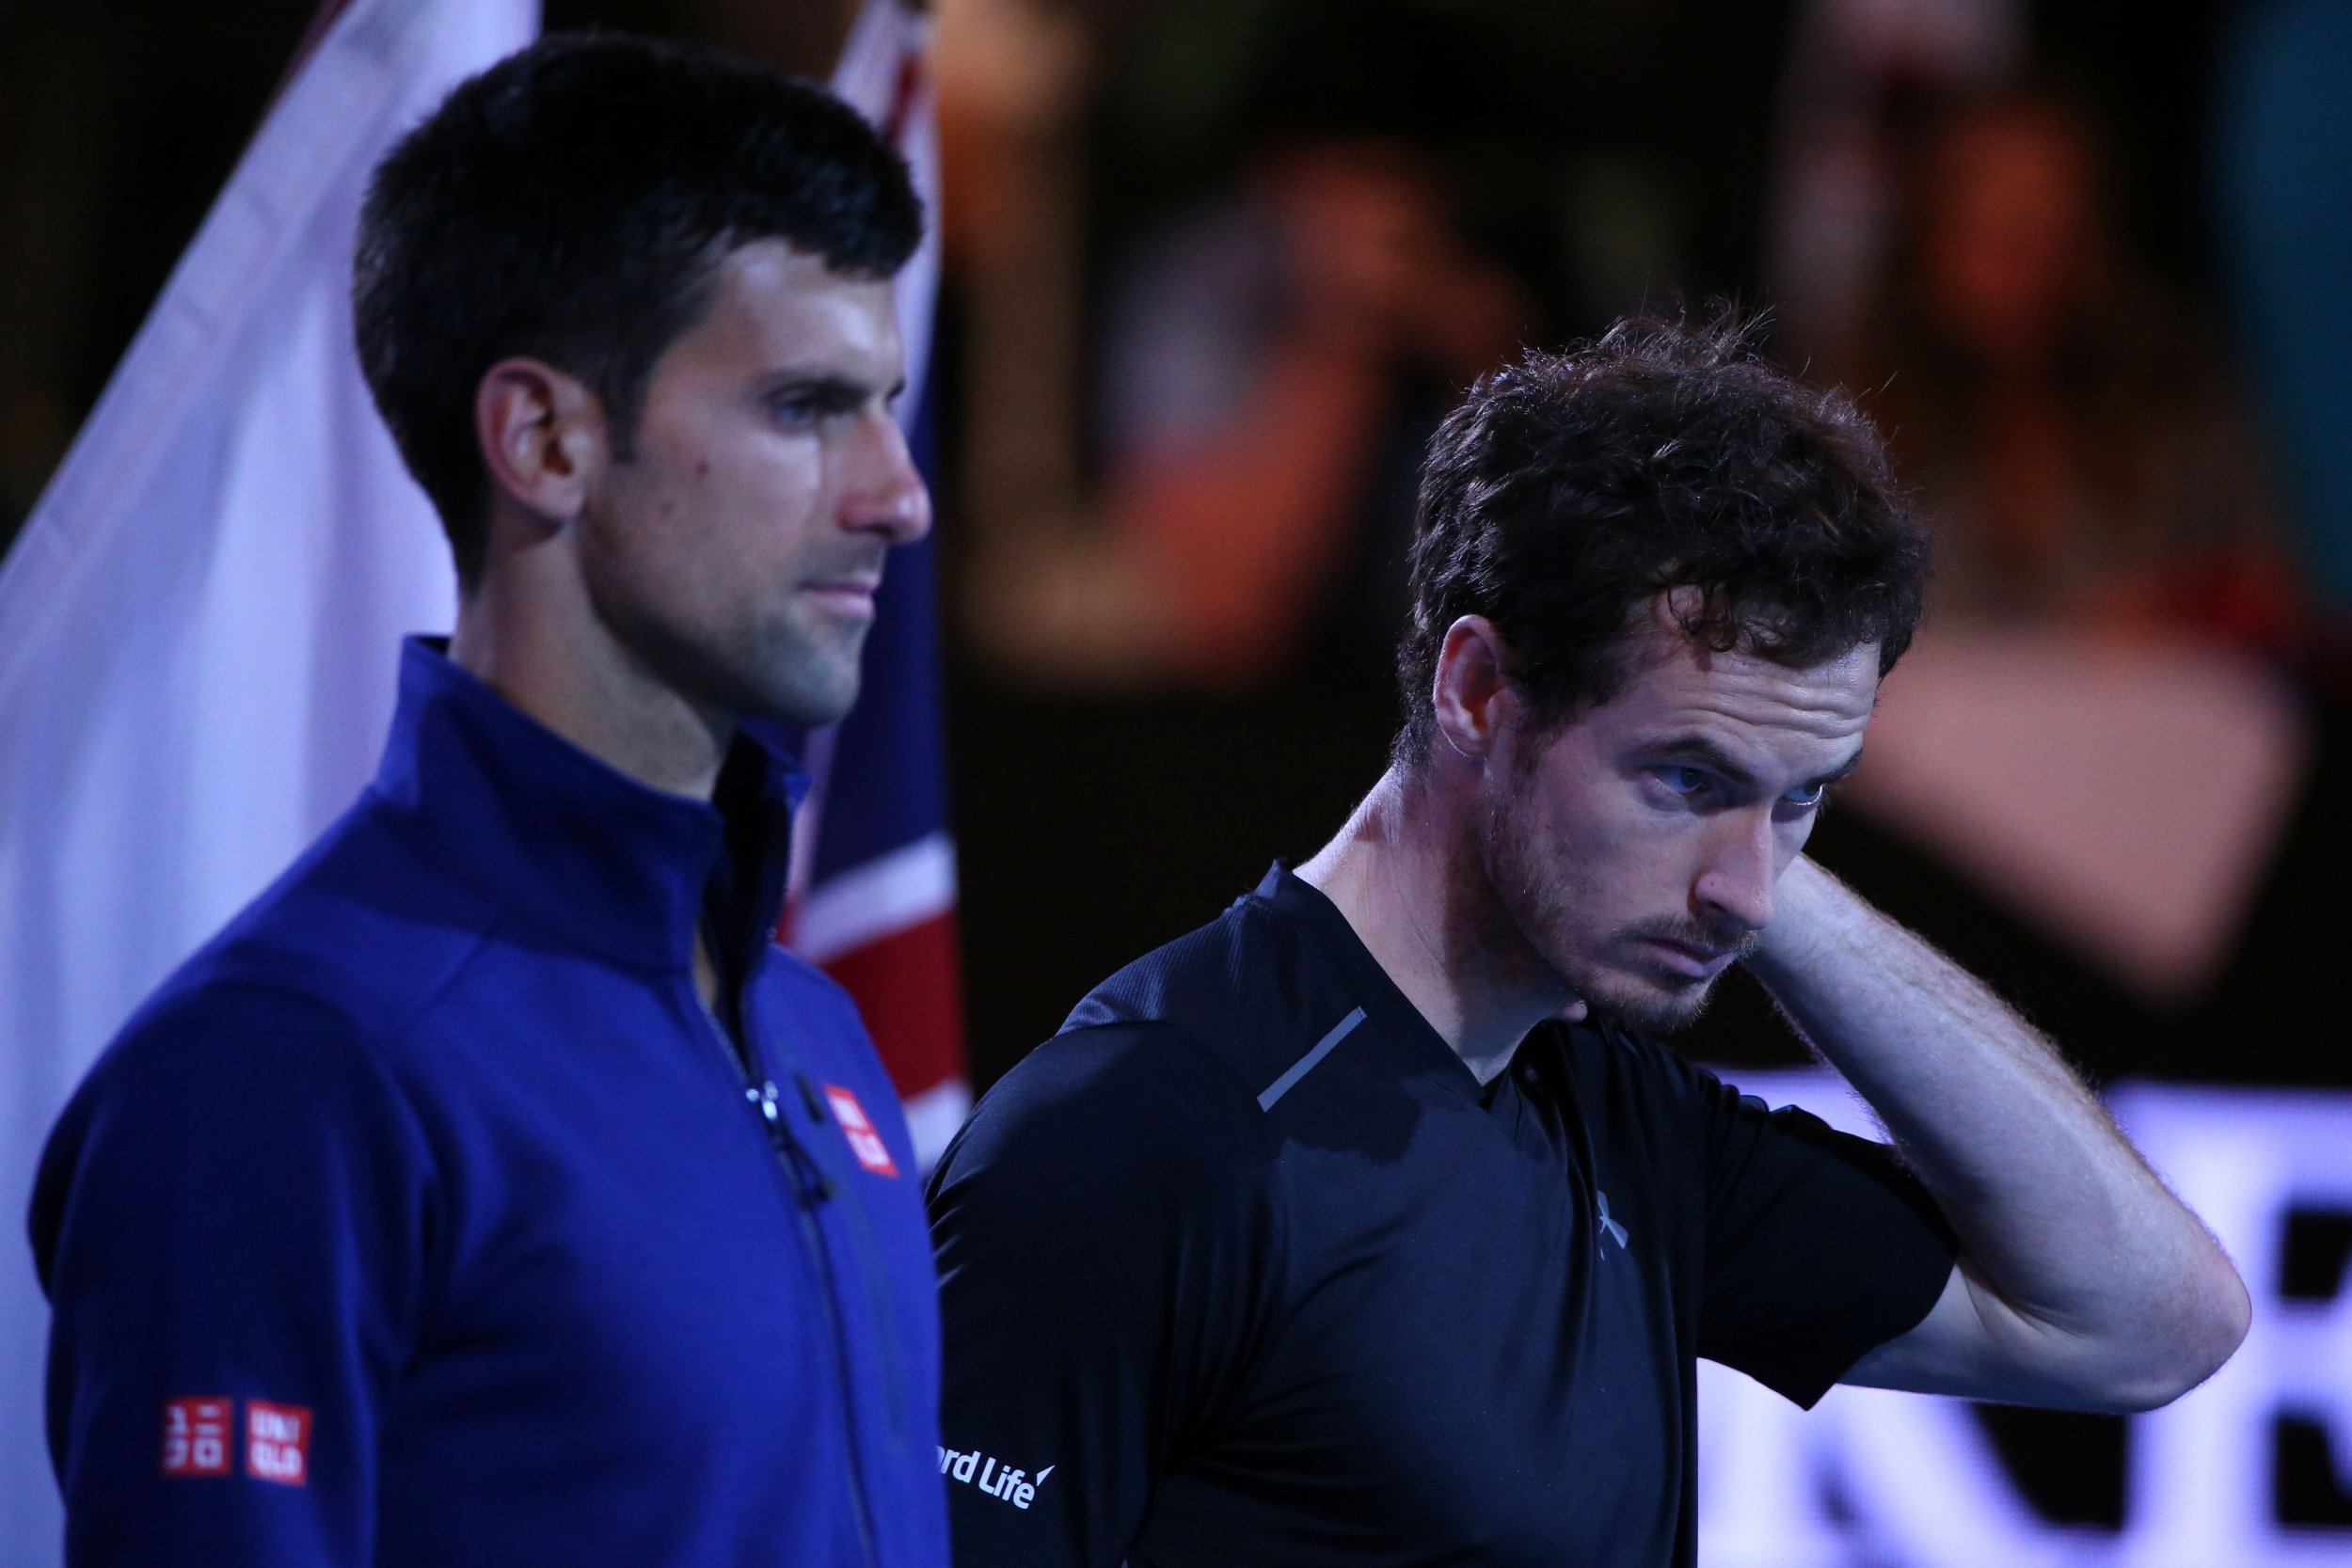 Andy Murray, right, has spoken out on doping in tennis, but Novak Djokovic says the sport is clean.